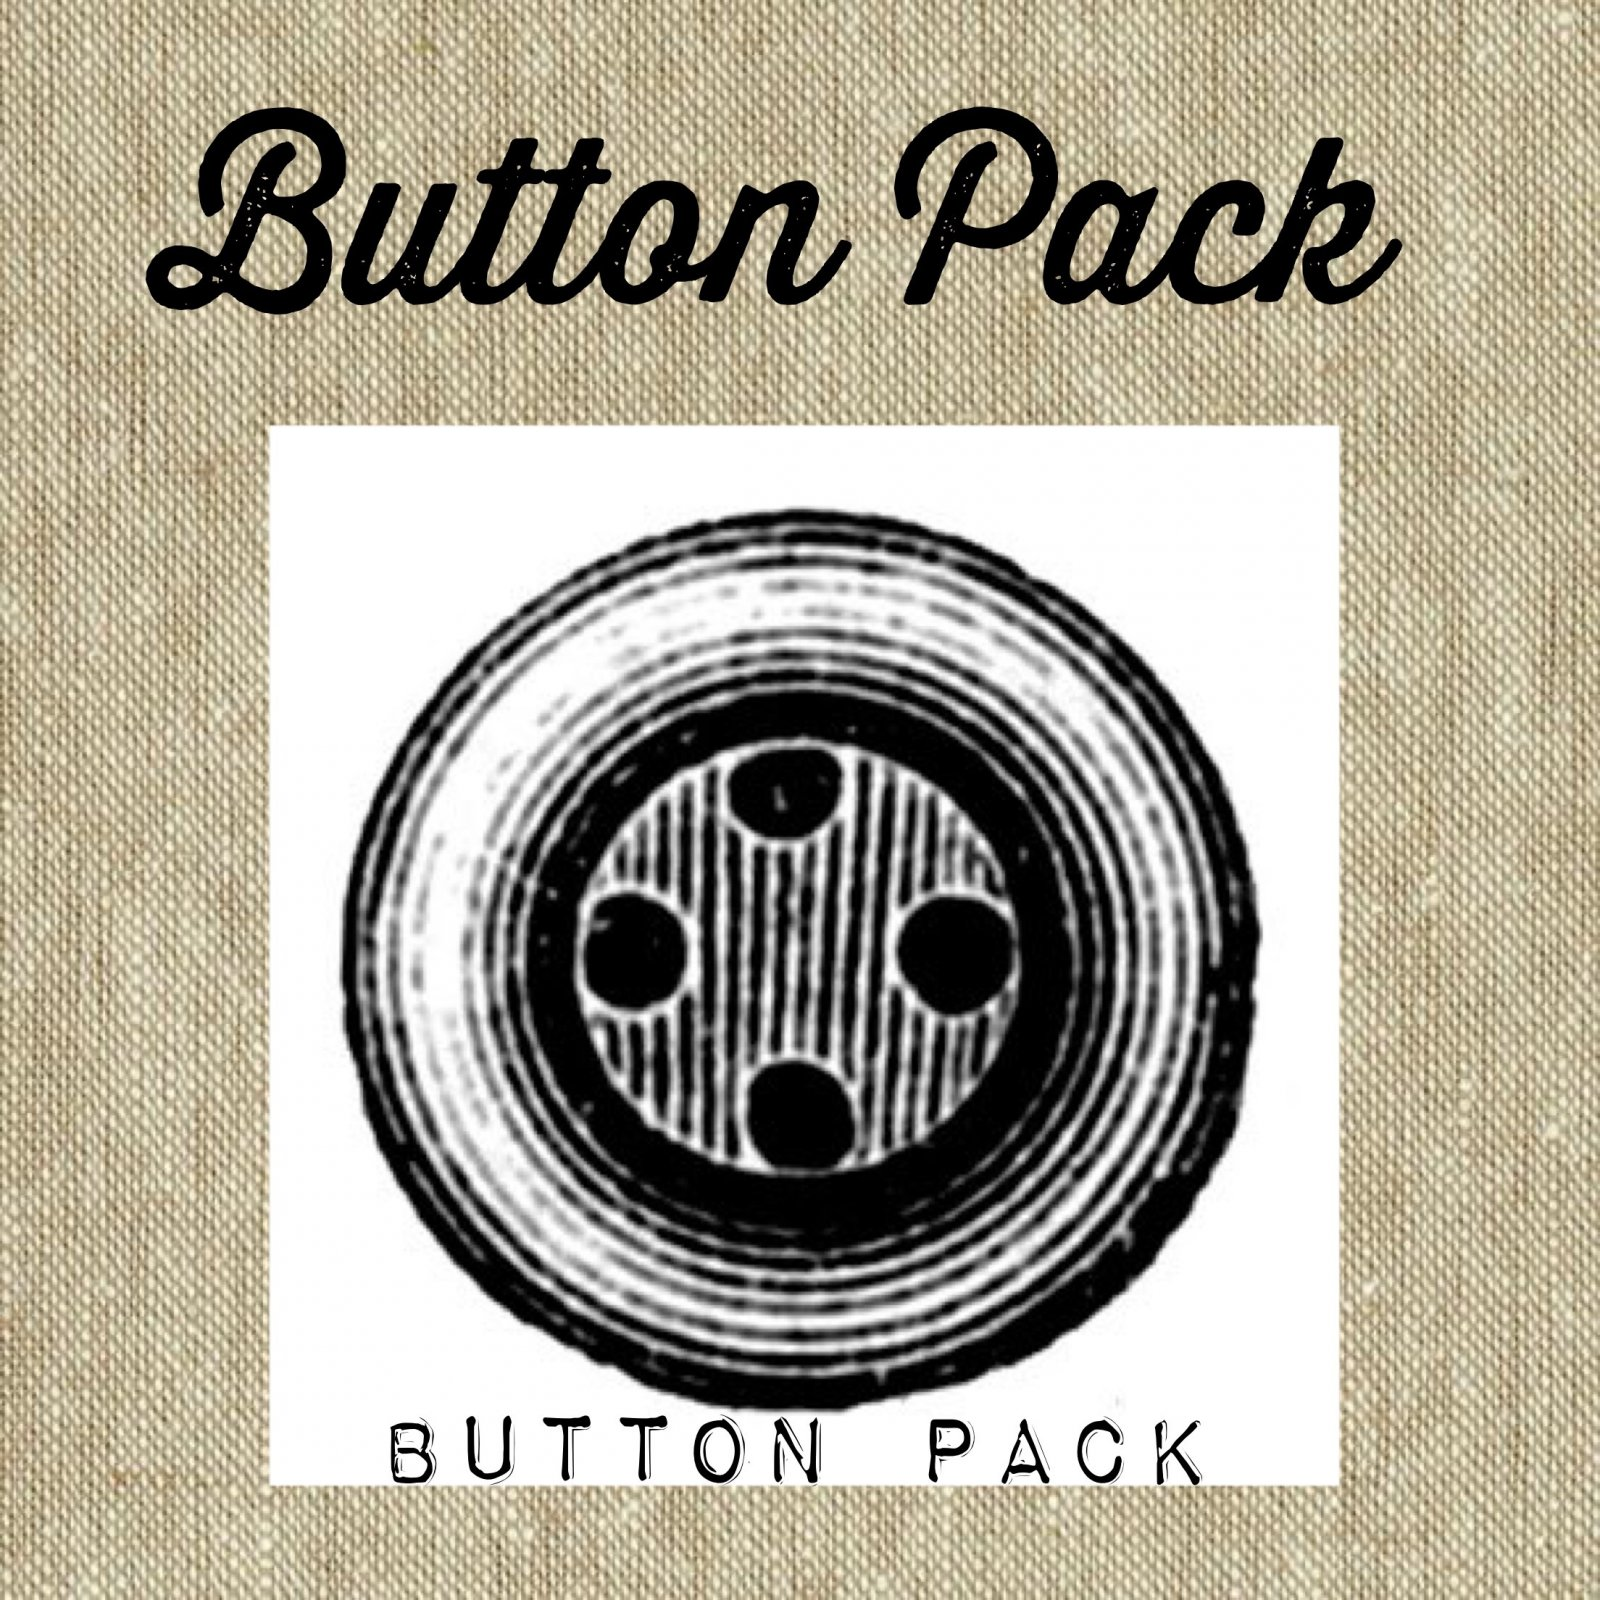 Buttermilk Basin's Vintage Vibe * Holiday Greetings From Frosty Button Pack